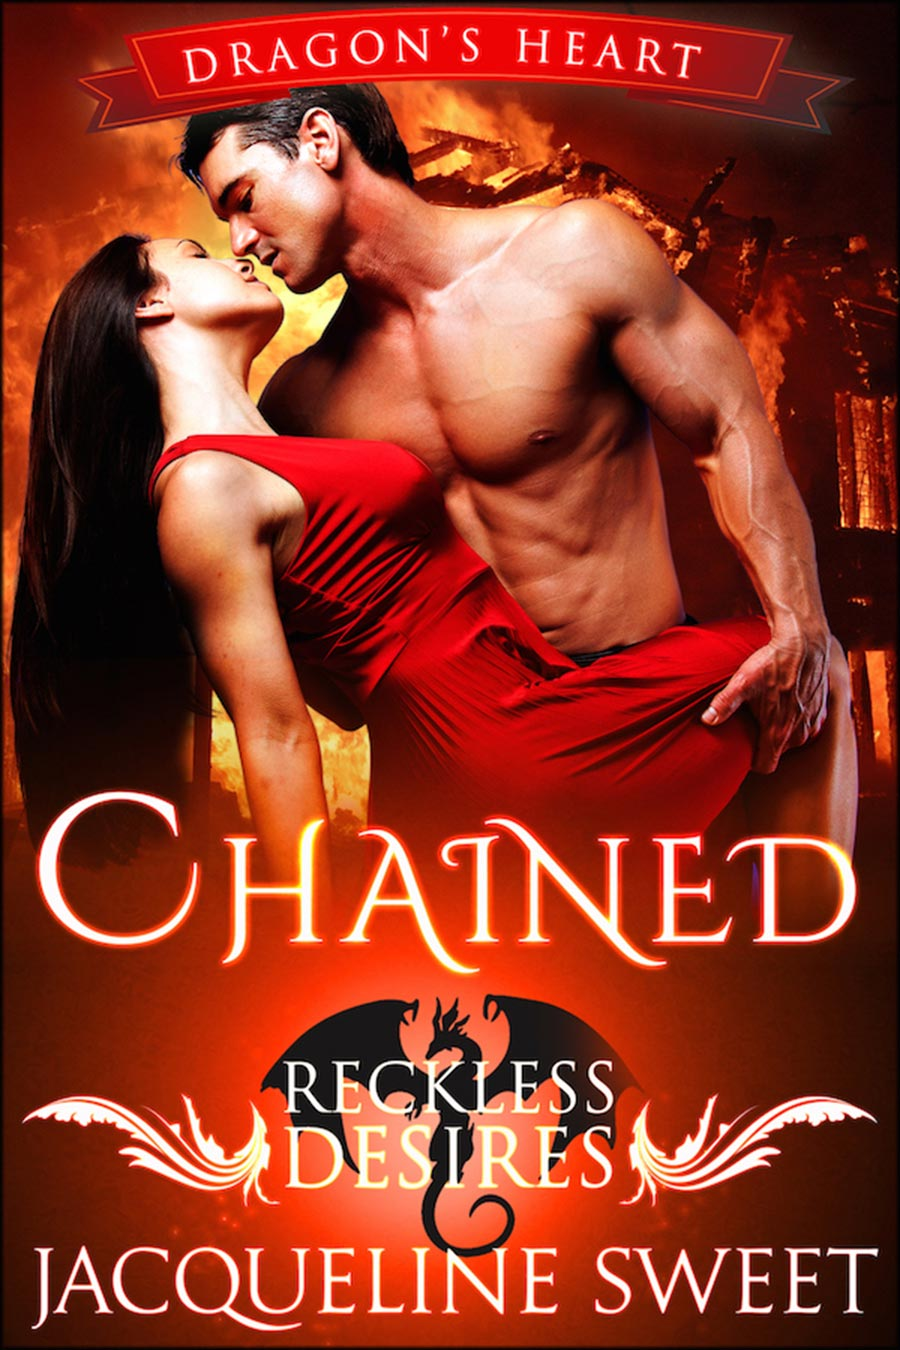 Dragons-Heart---Chained---Jacqueline-Sweet---book-1---600.jpg